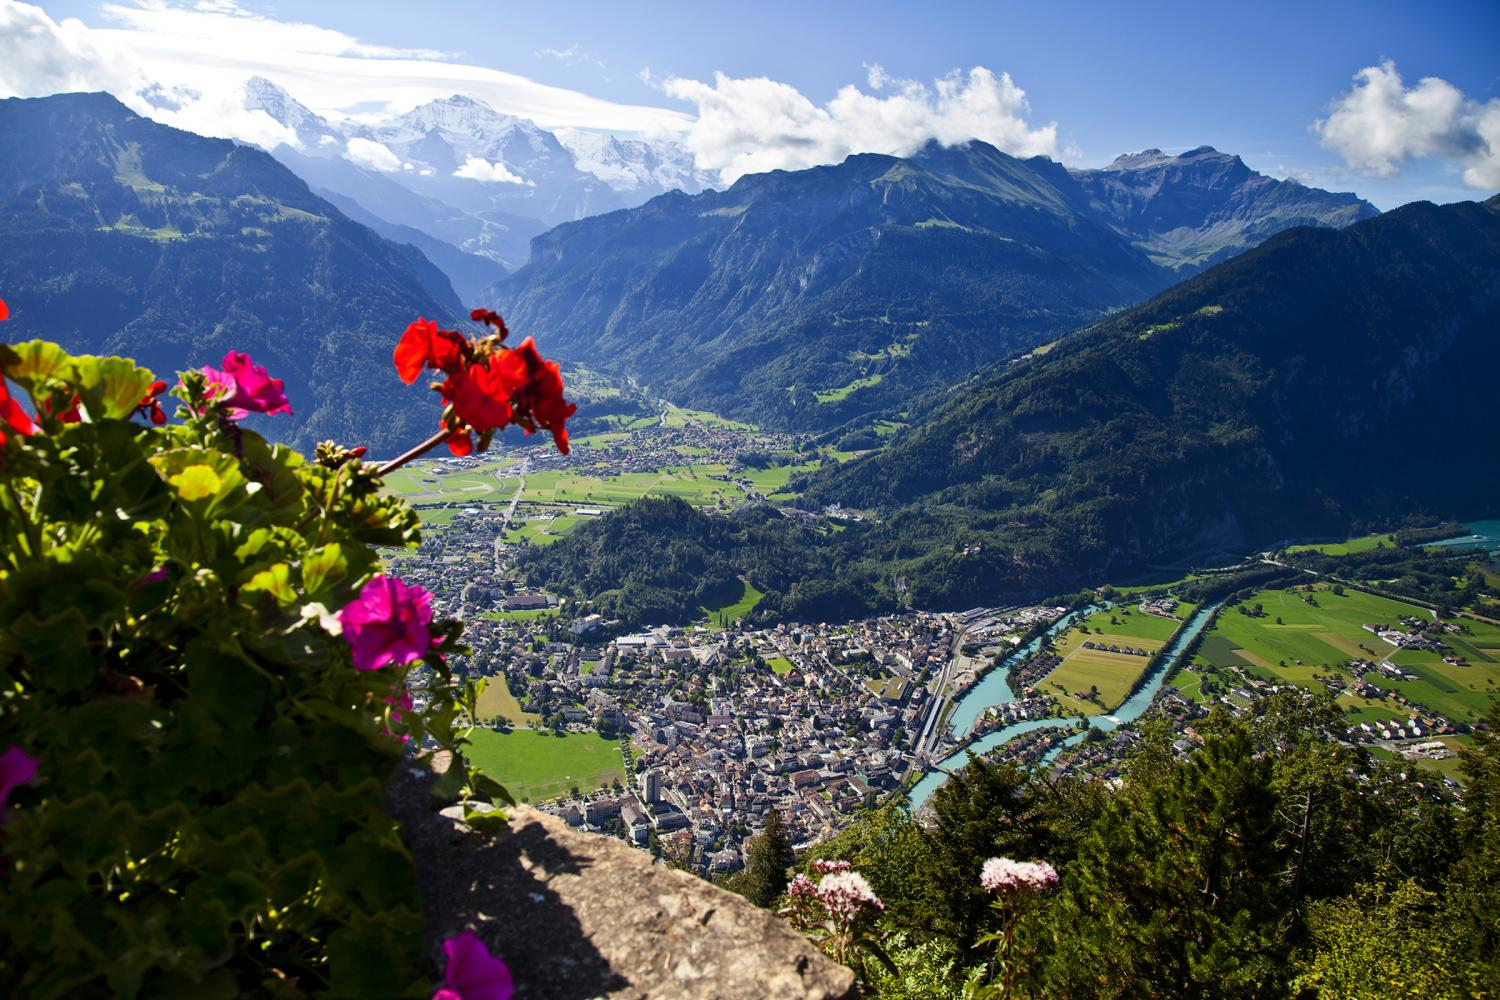 The view to Interlaken